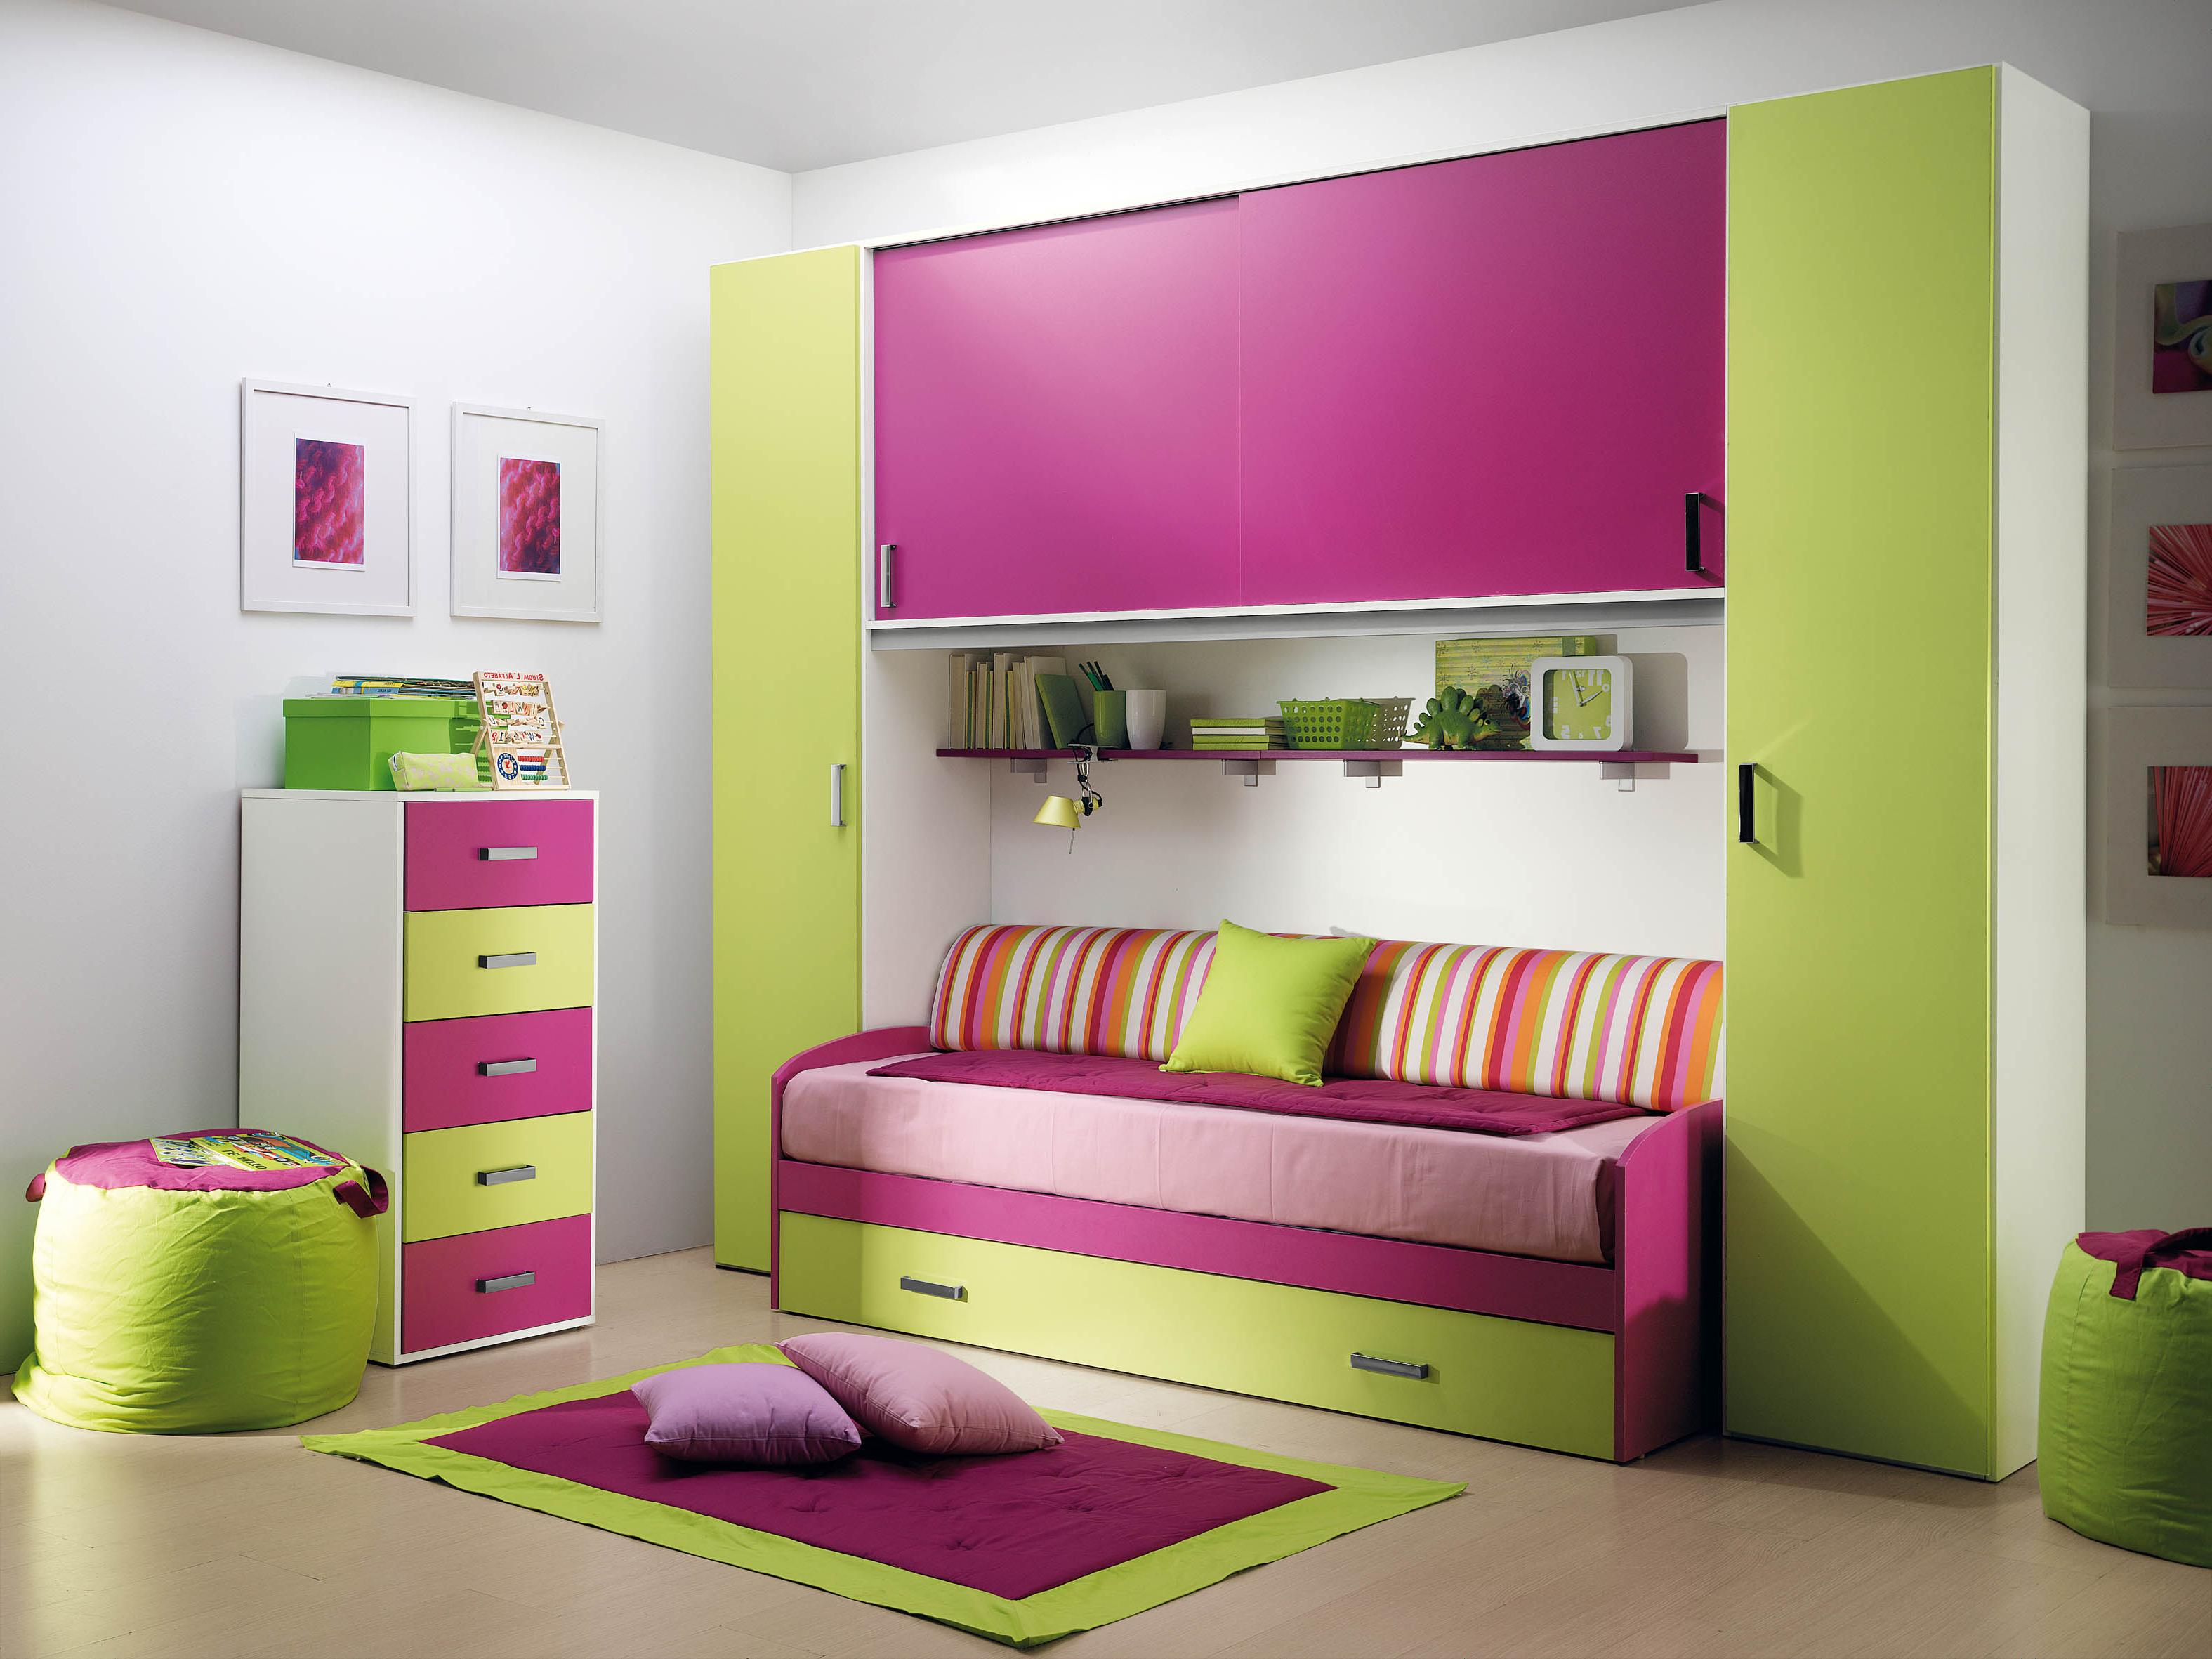 childrens bedroom furniture for small rooms kids bedroom furniture with desk desk childrens bedroom furniture kids bed ADZAMUO